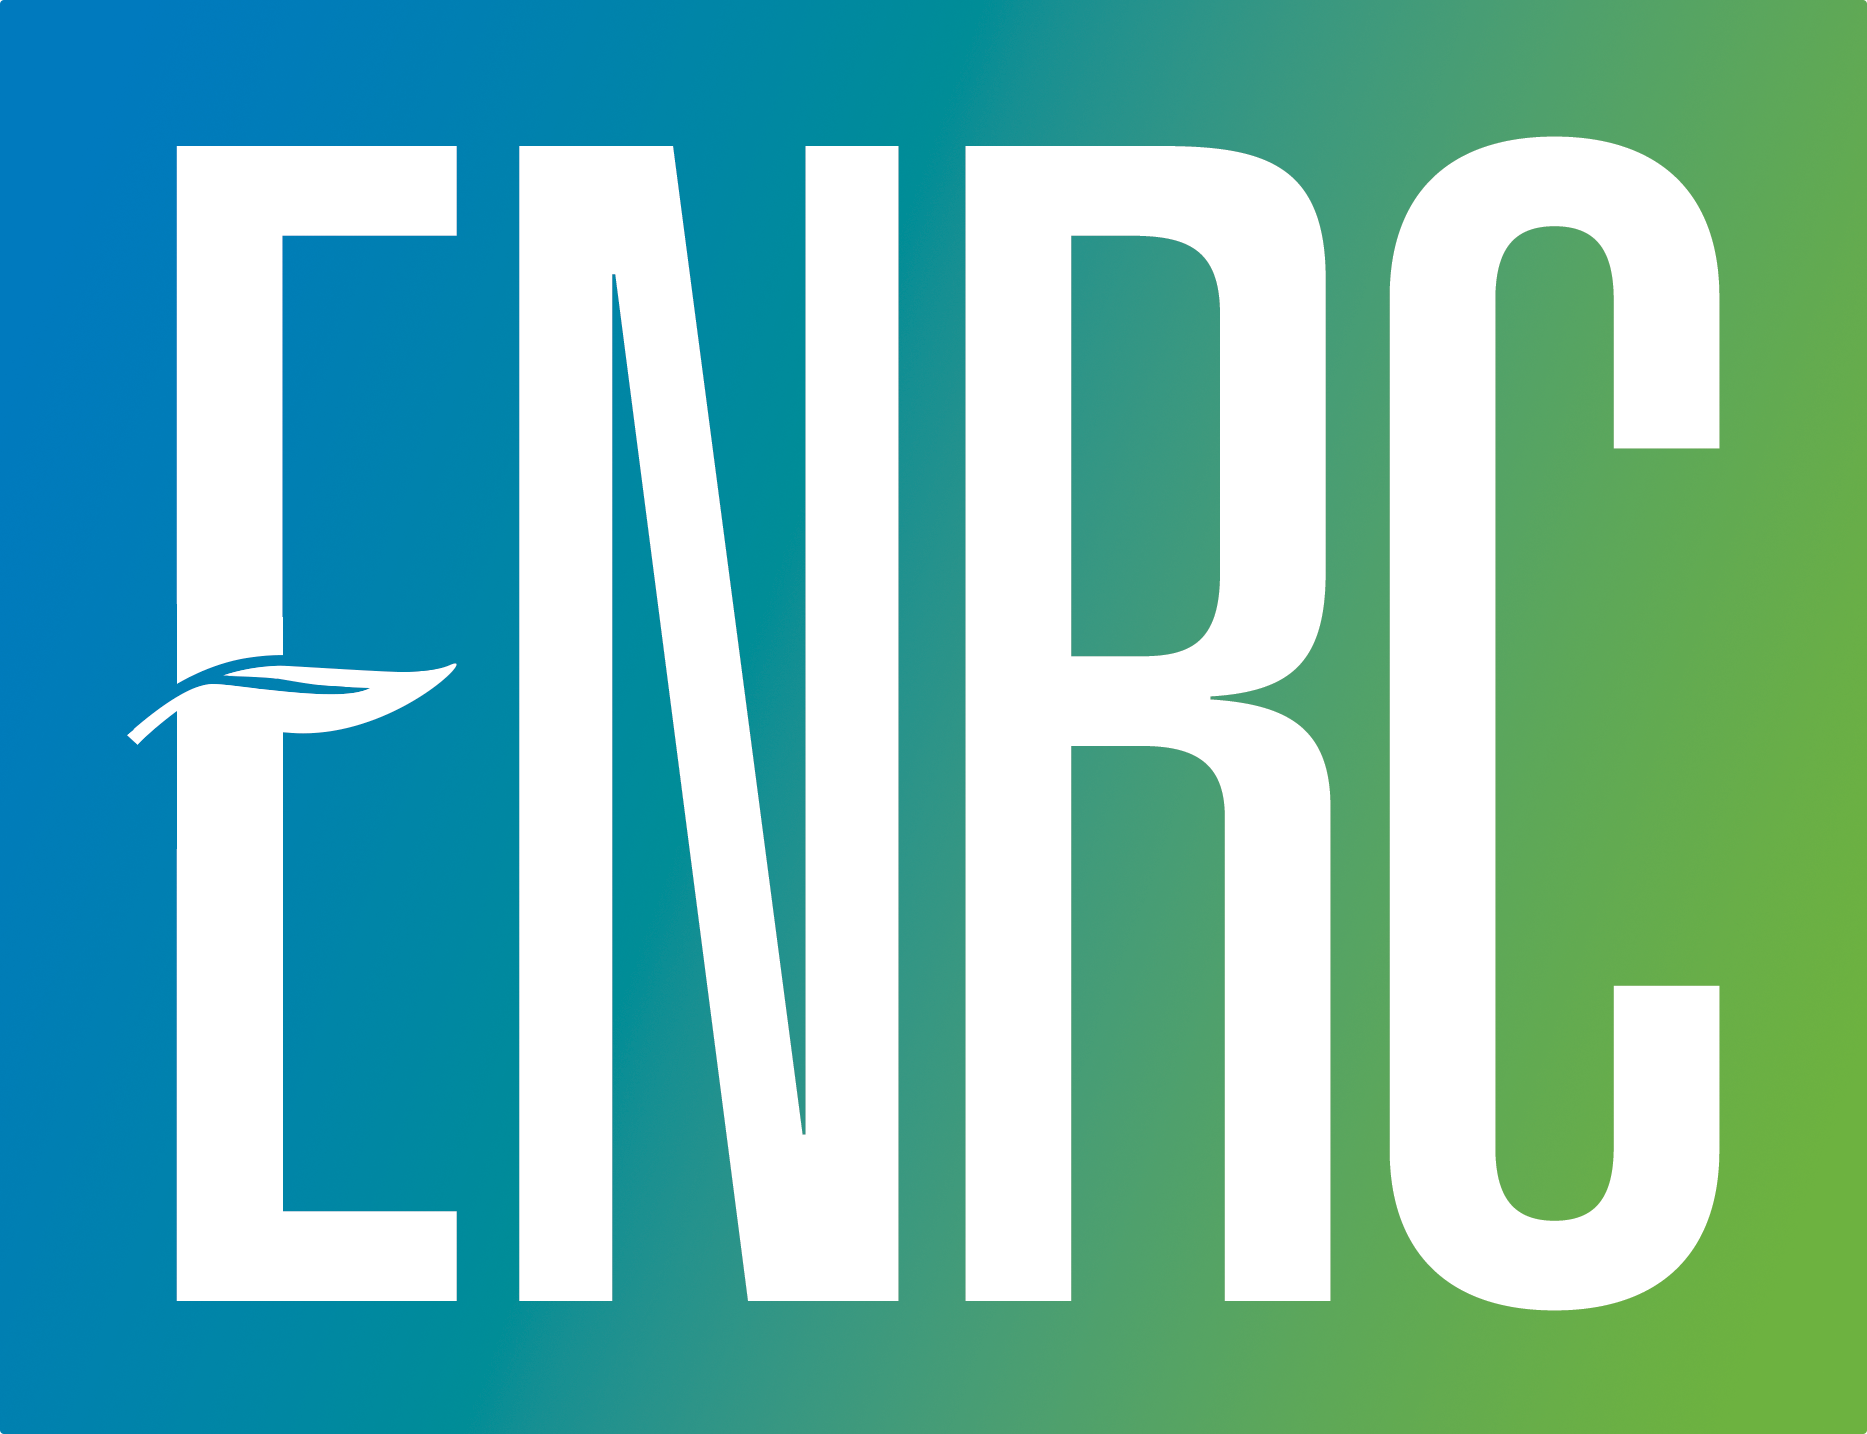 Enterprise Network Resolutions Contracting, LLC (ENRC)